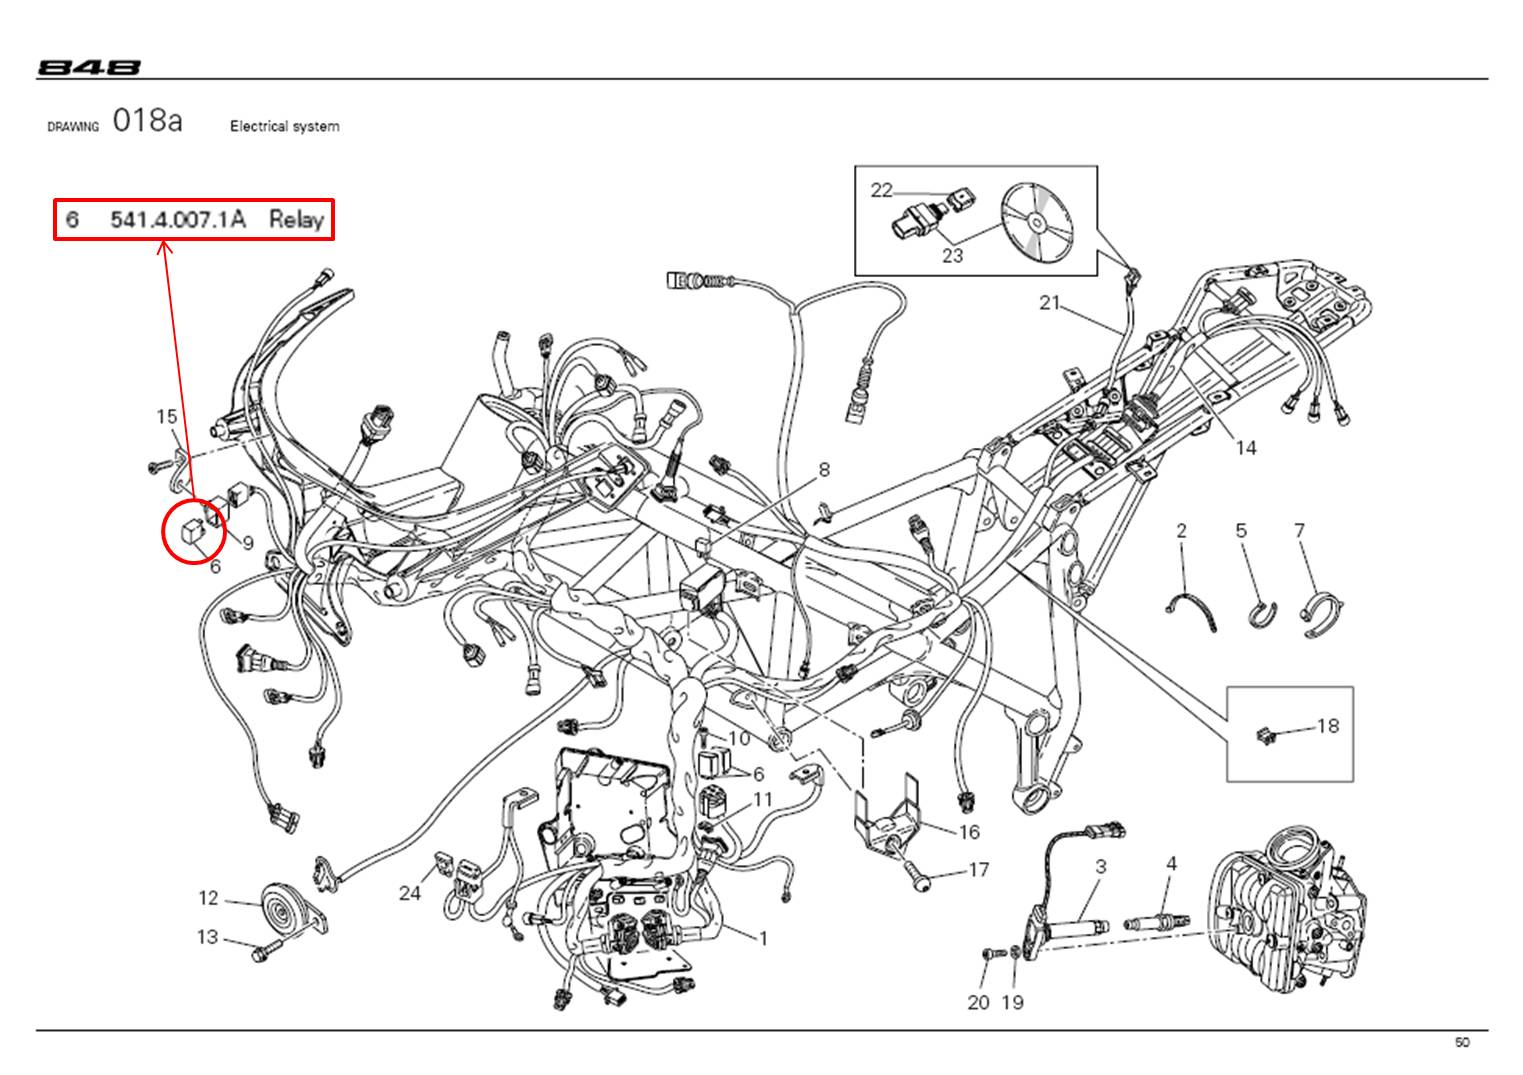 Ducati 848 Wiring Diagram Electrical Schematic Trusted Typical House Schematics 1098 System And Info U2022 Rh Datagrind Co Basic Diagrams Quad Outlet